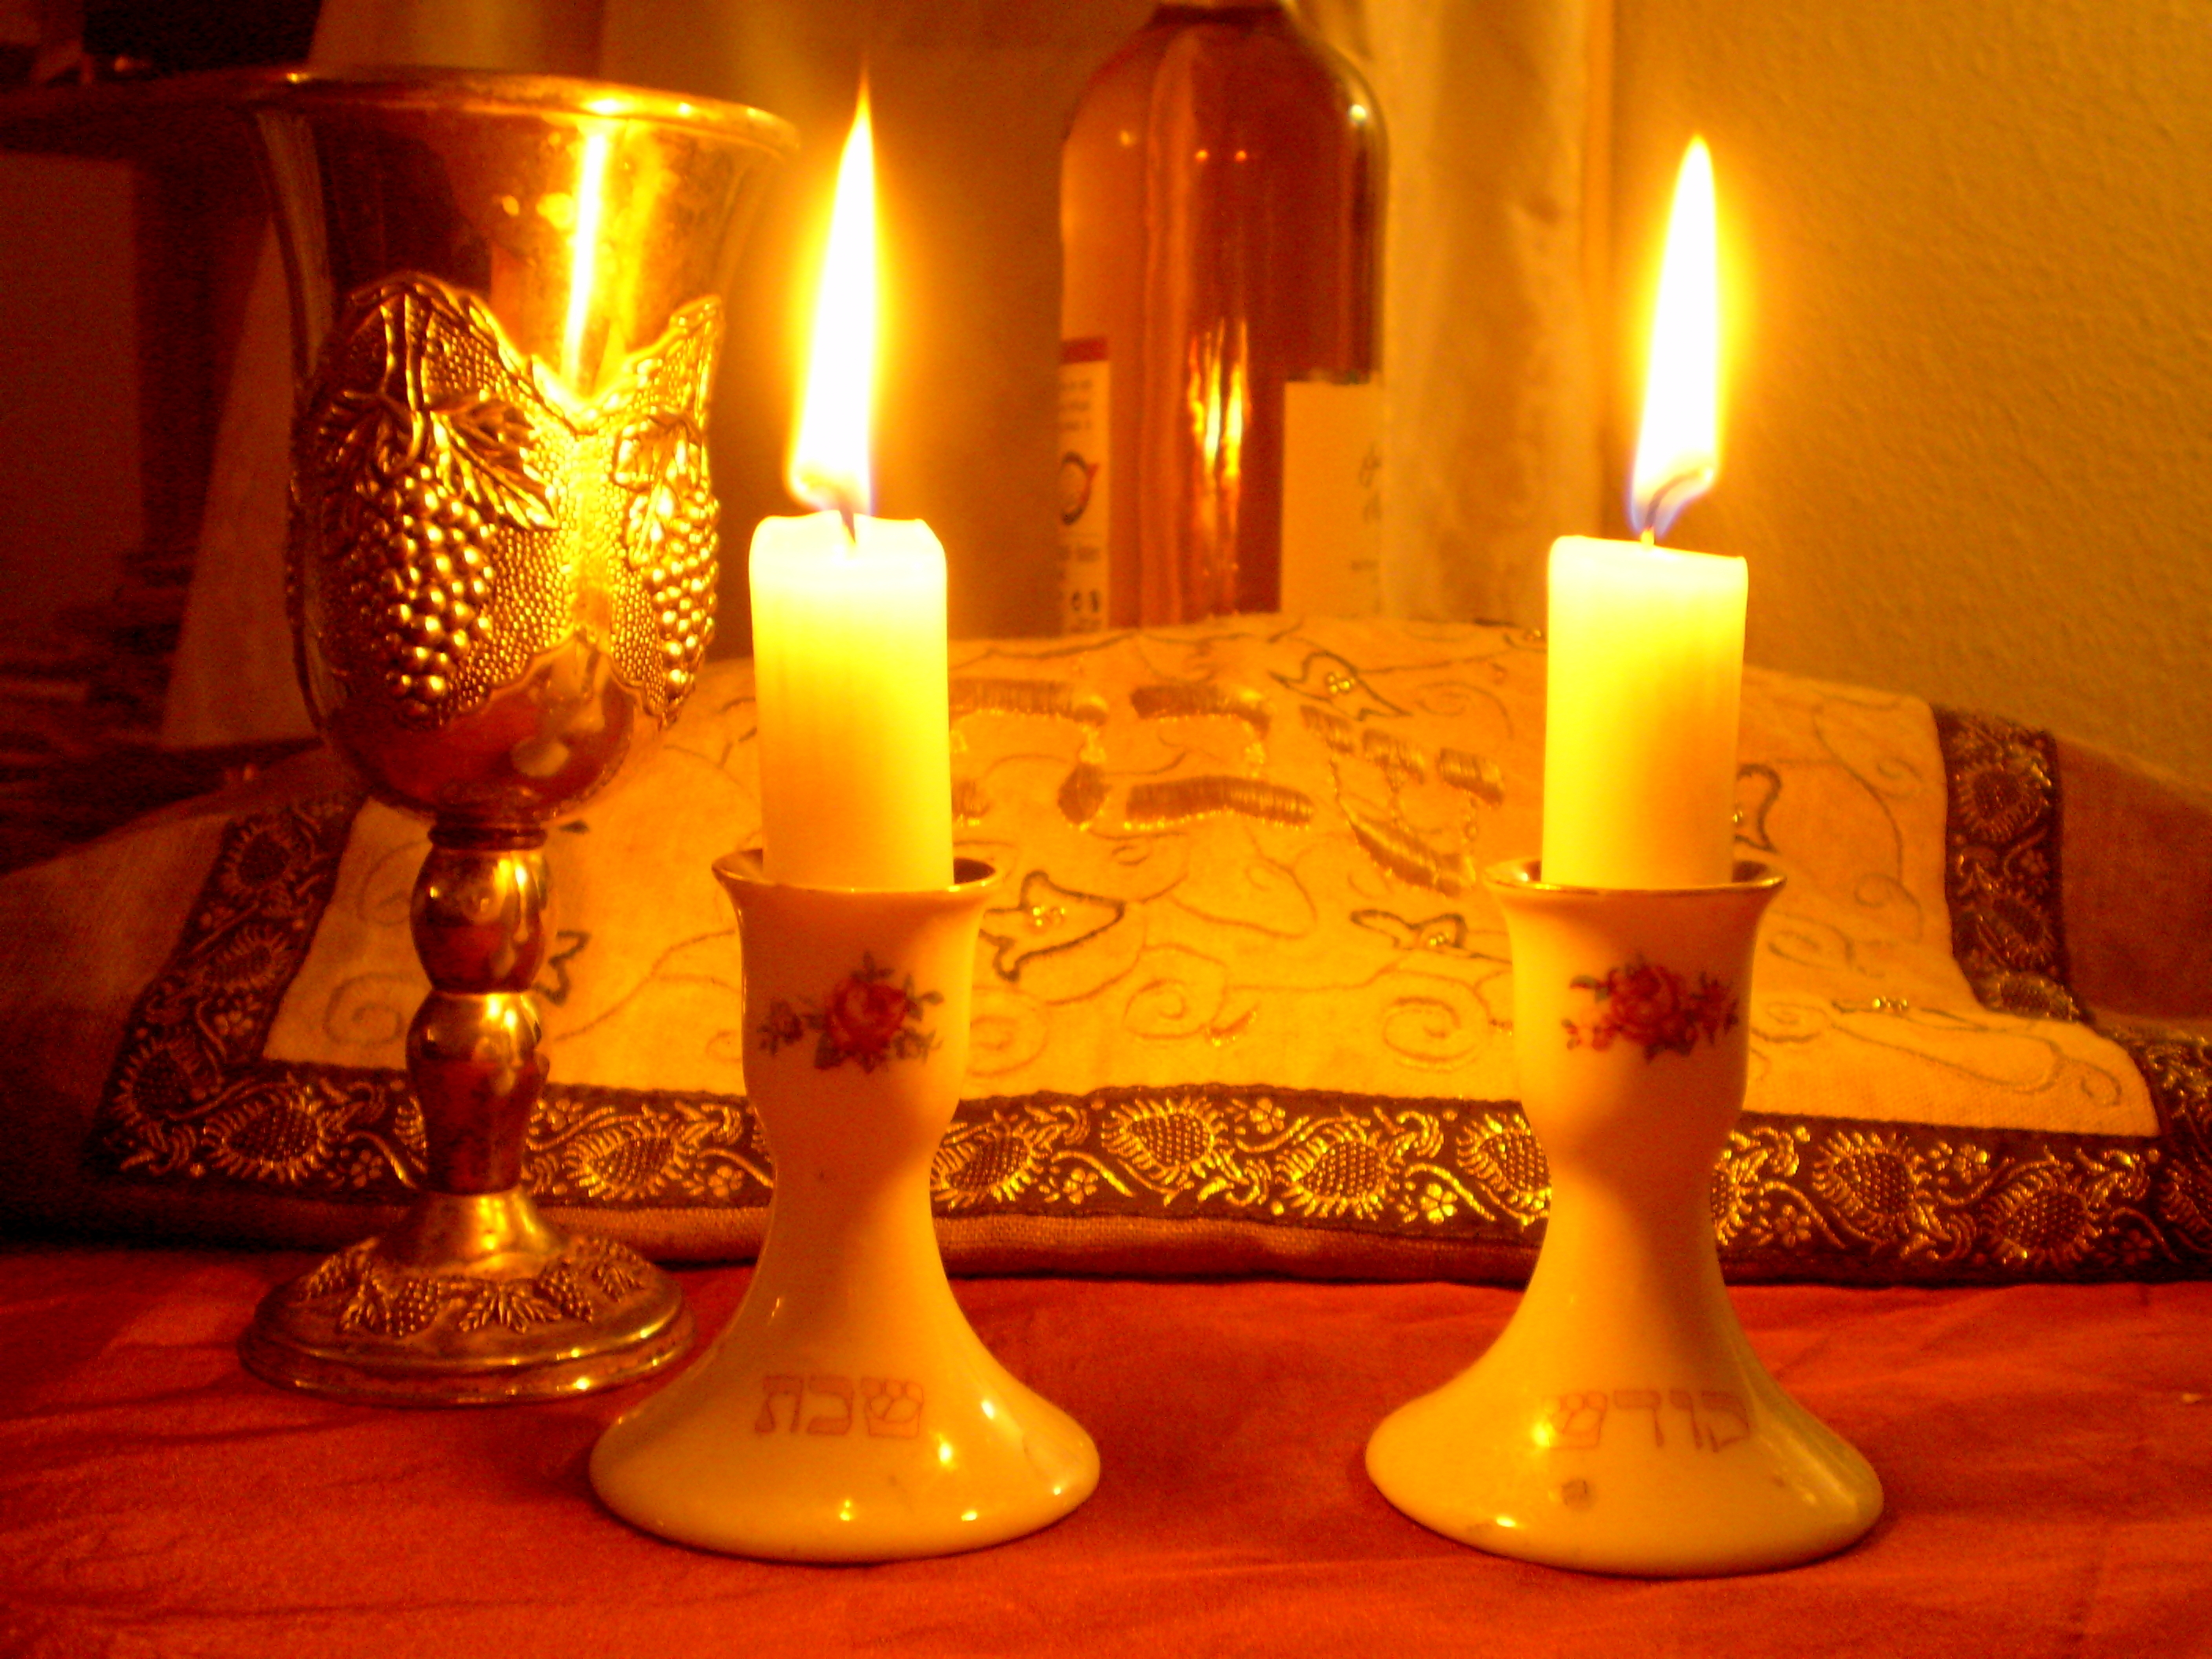 Shabbath Candles Google image from https://upload.wikimedia.org/wikipedia/commons/d/df/Shabbat_Candles.jpg